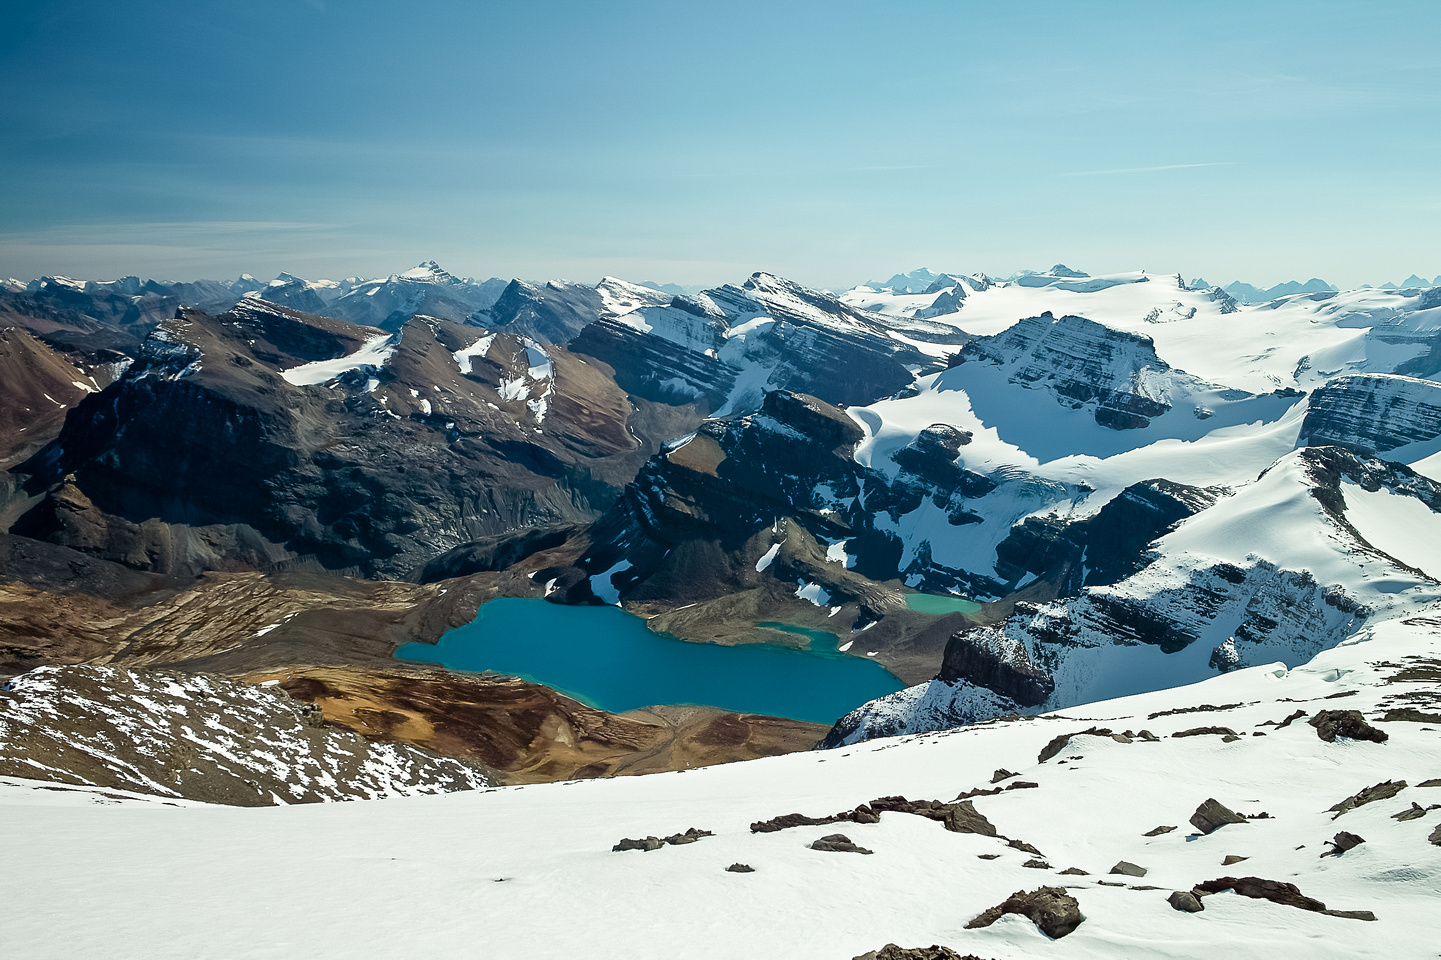 Caldron Lake with Thompson, Peyto and Wapta Icefield beyond.